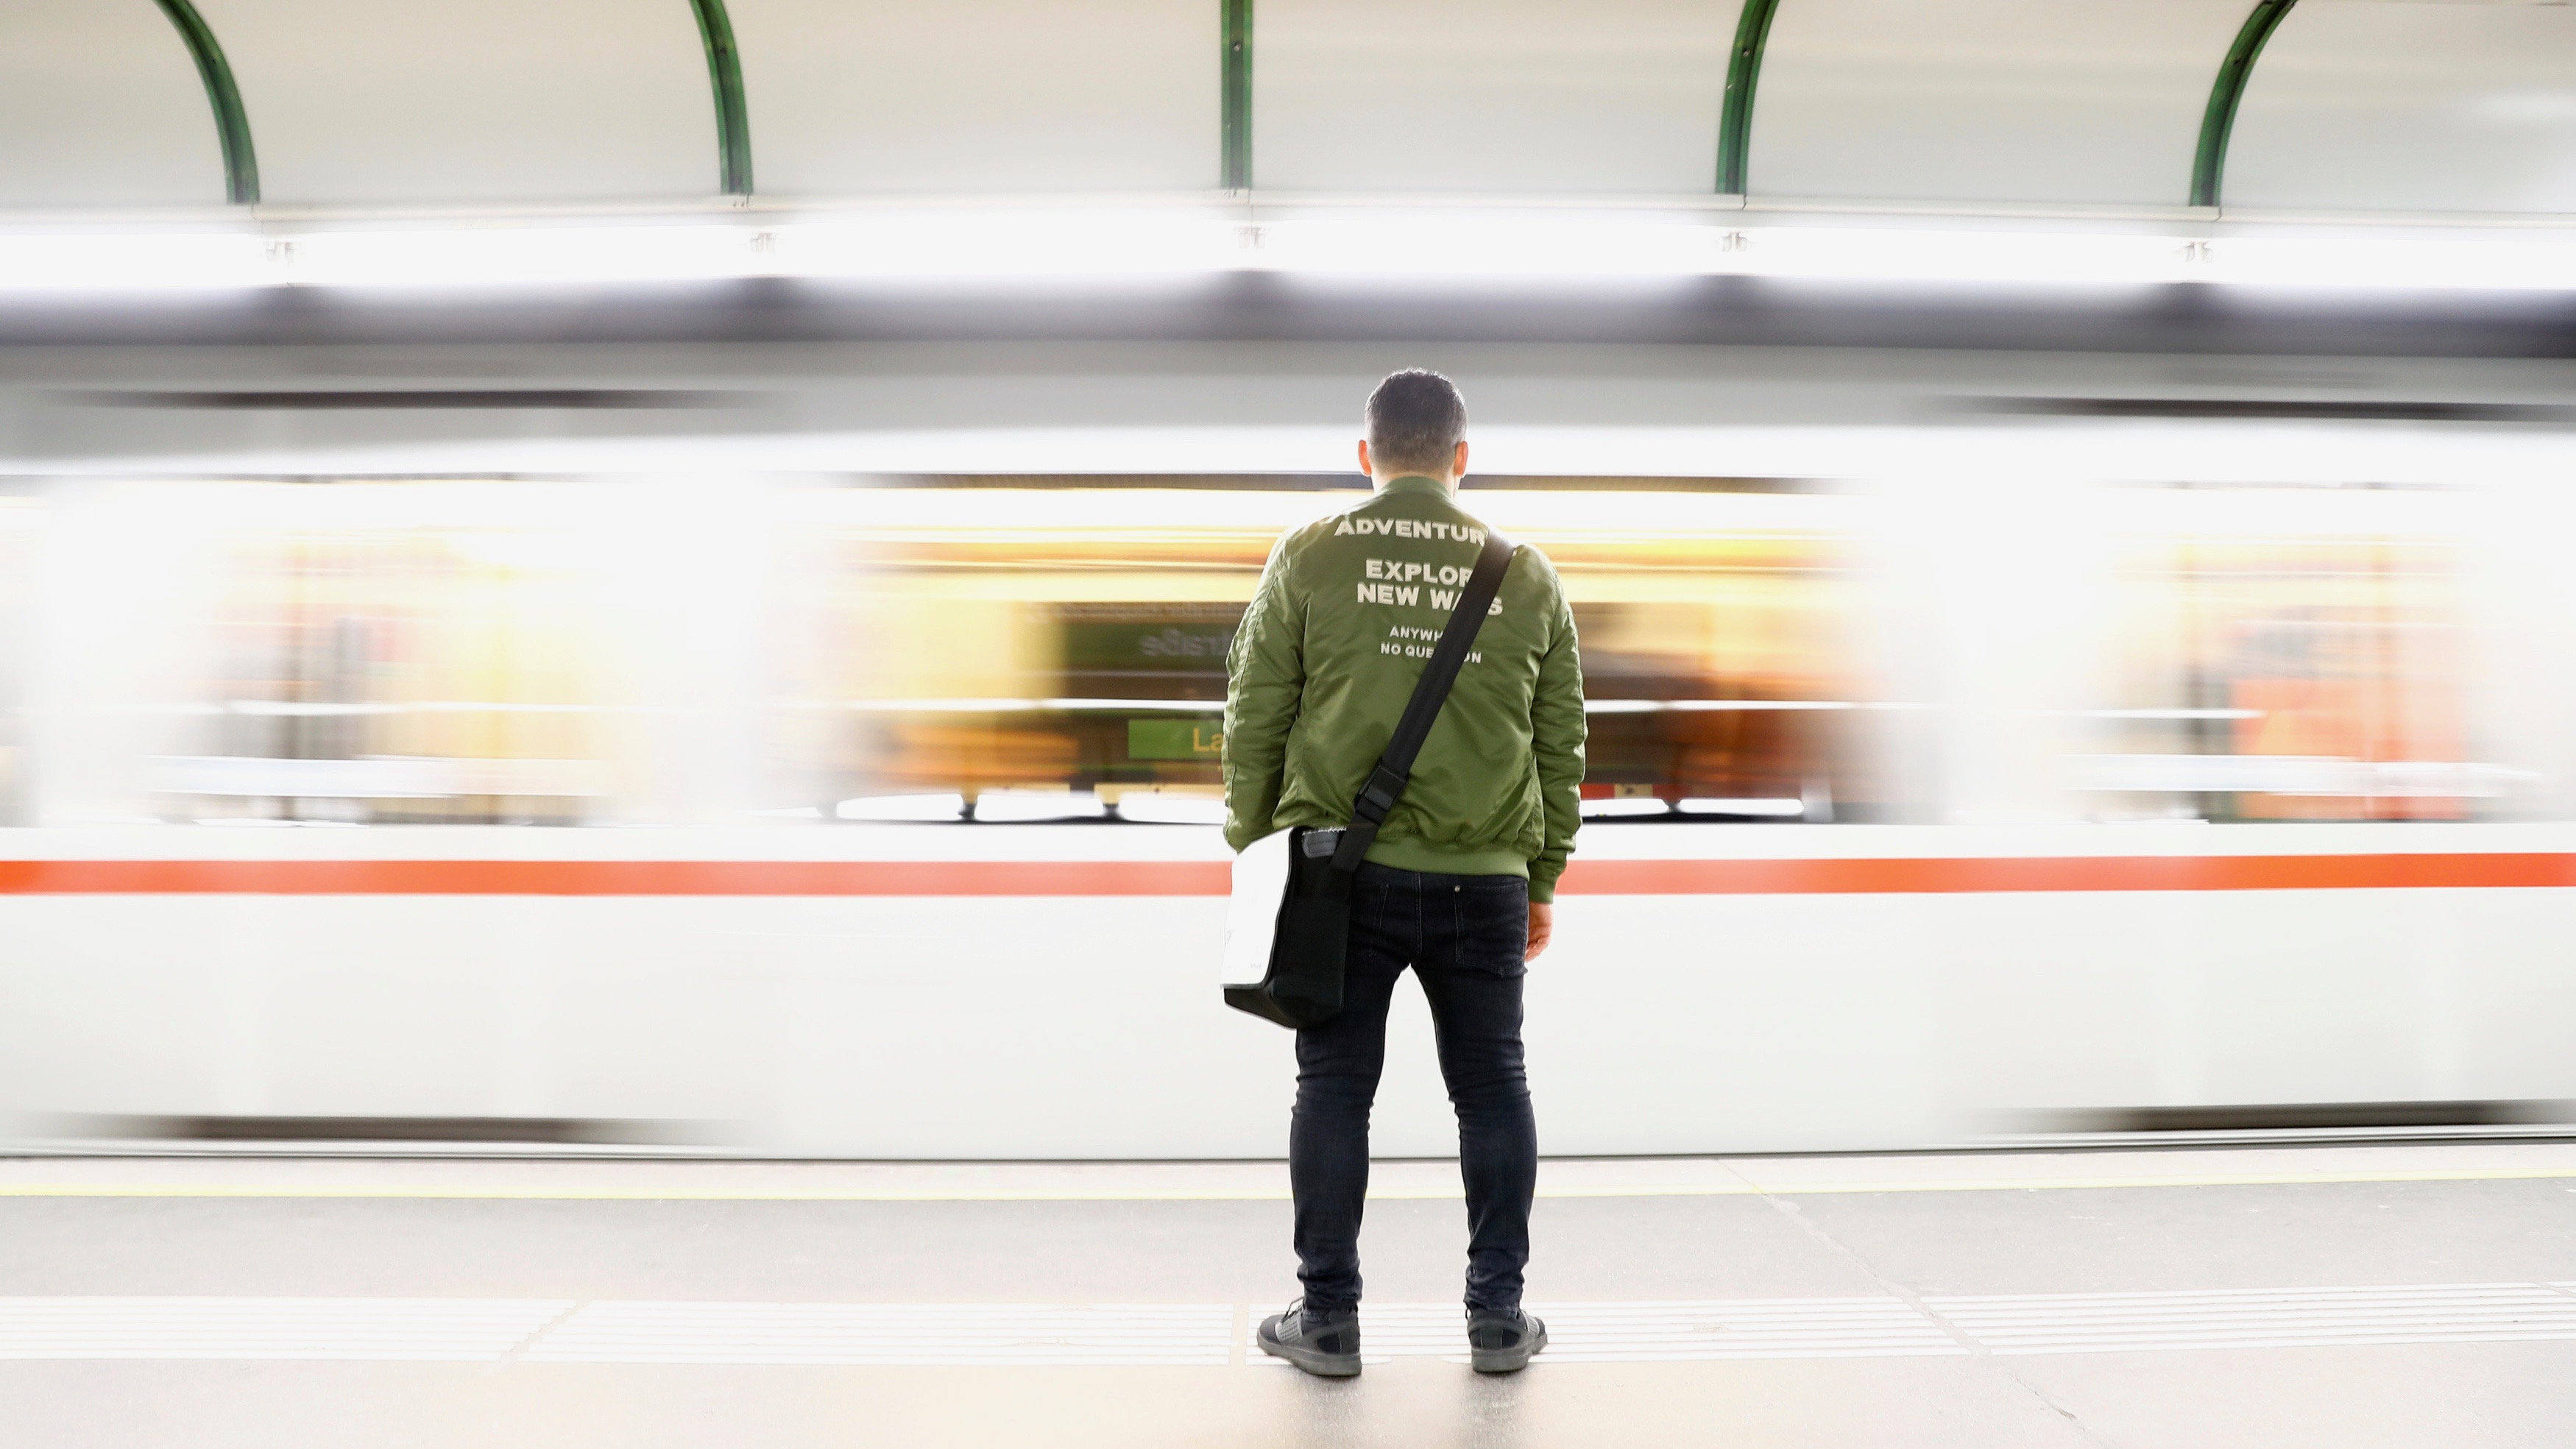 A man waits on platform as subway rushes by in Vienna.